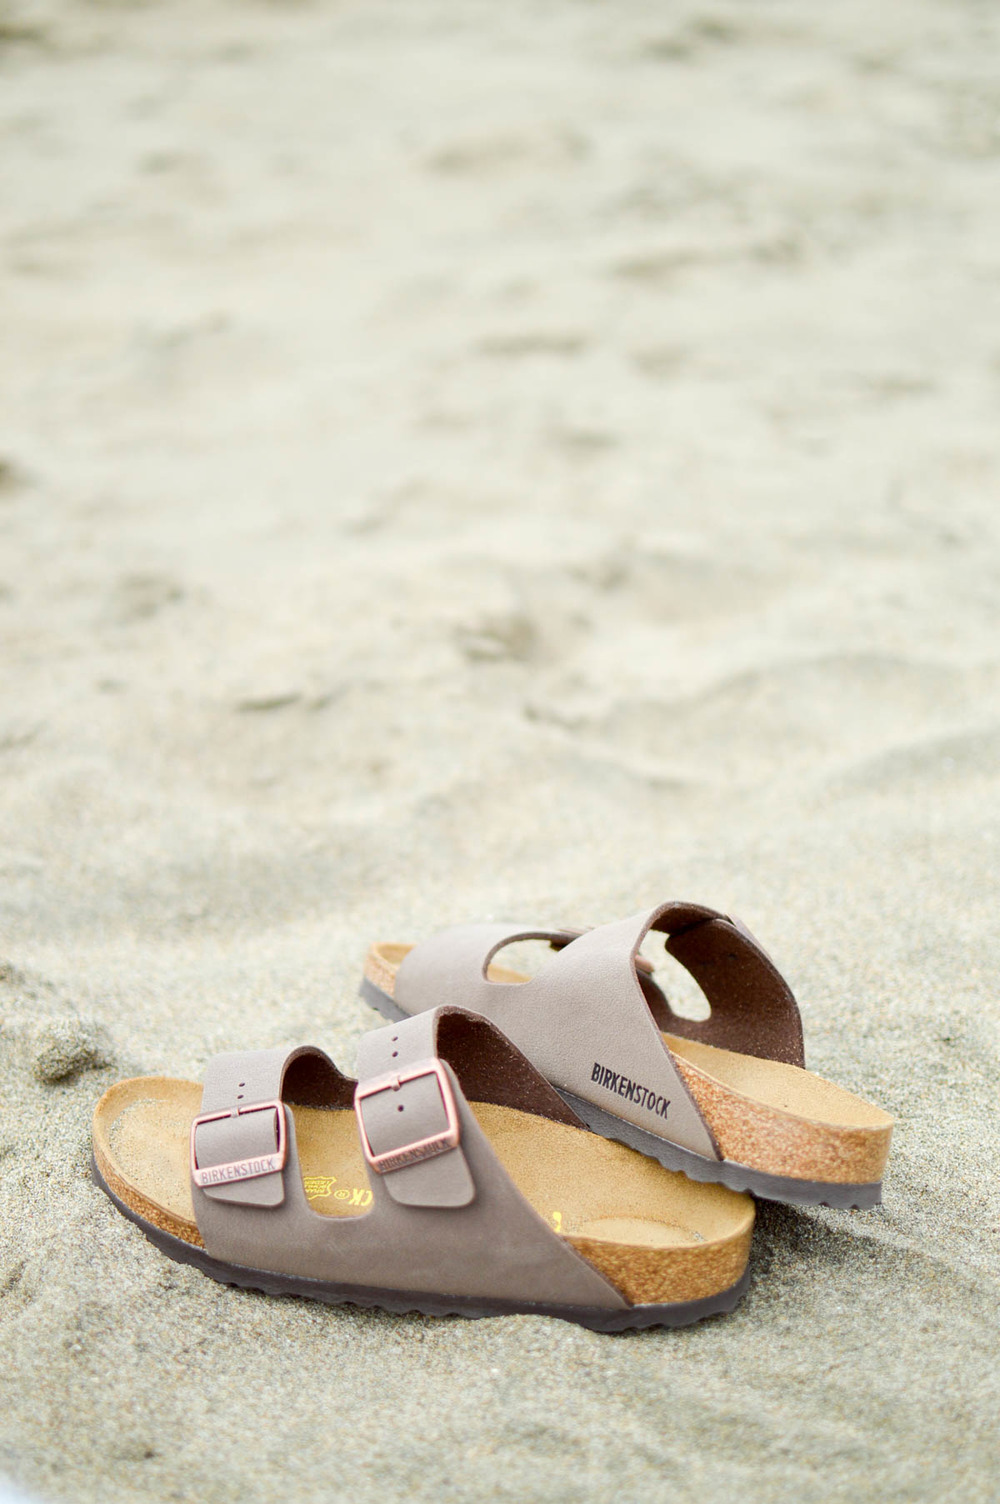 Beach Weekend Style Birkenstock via. www.birdieshoots.com